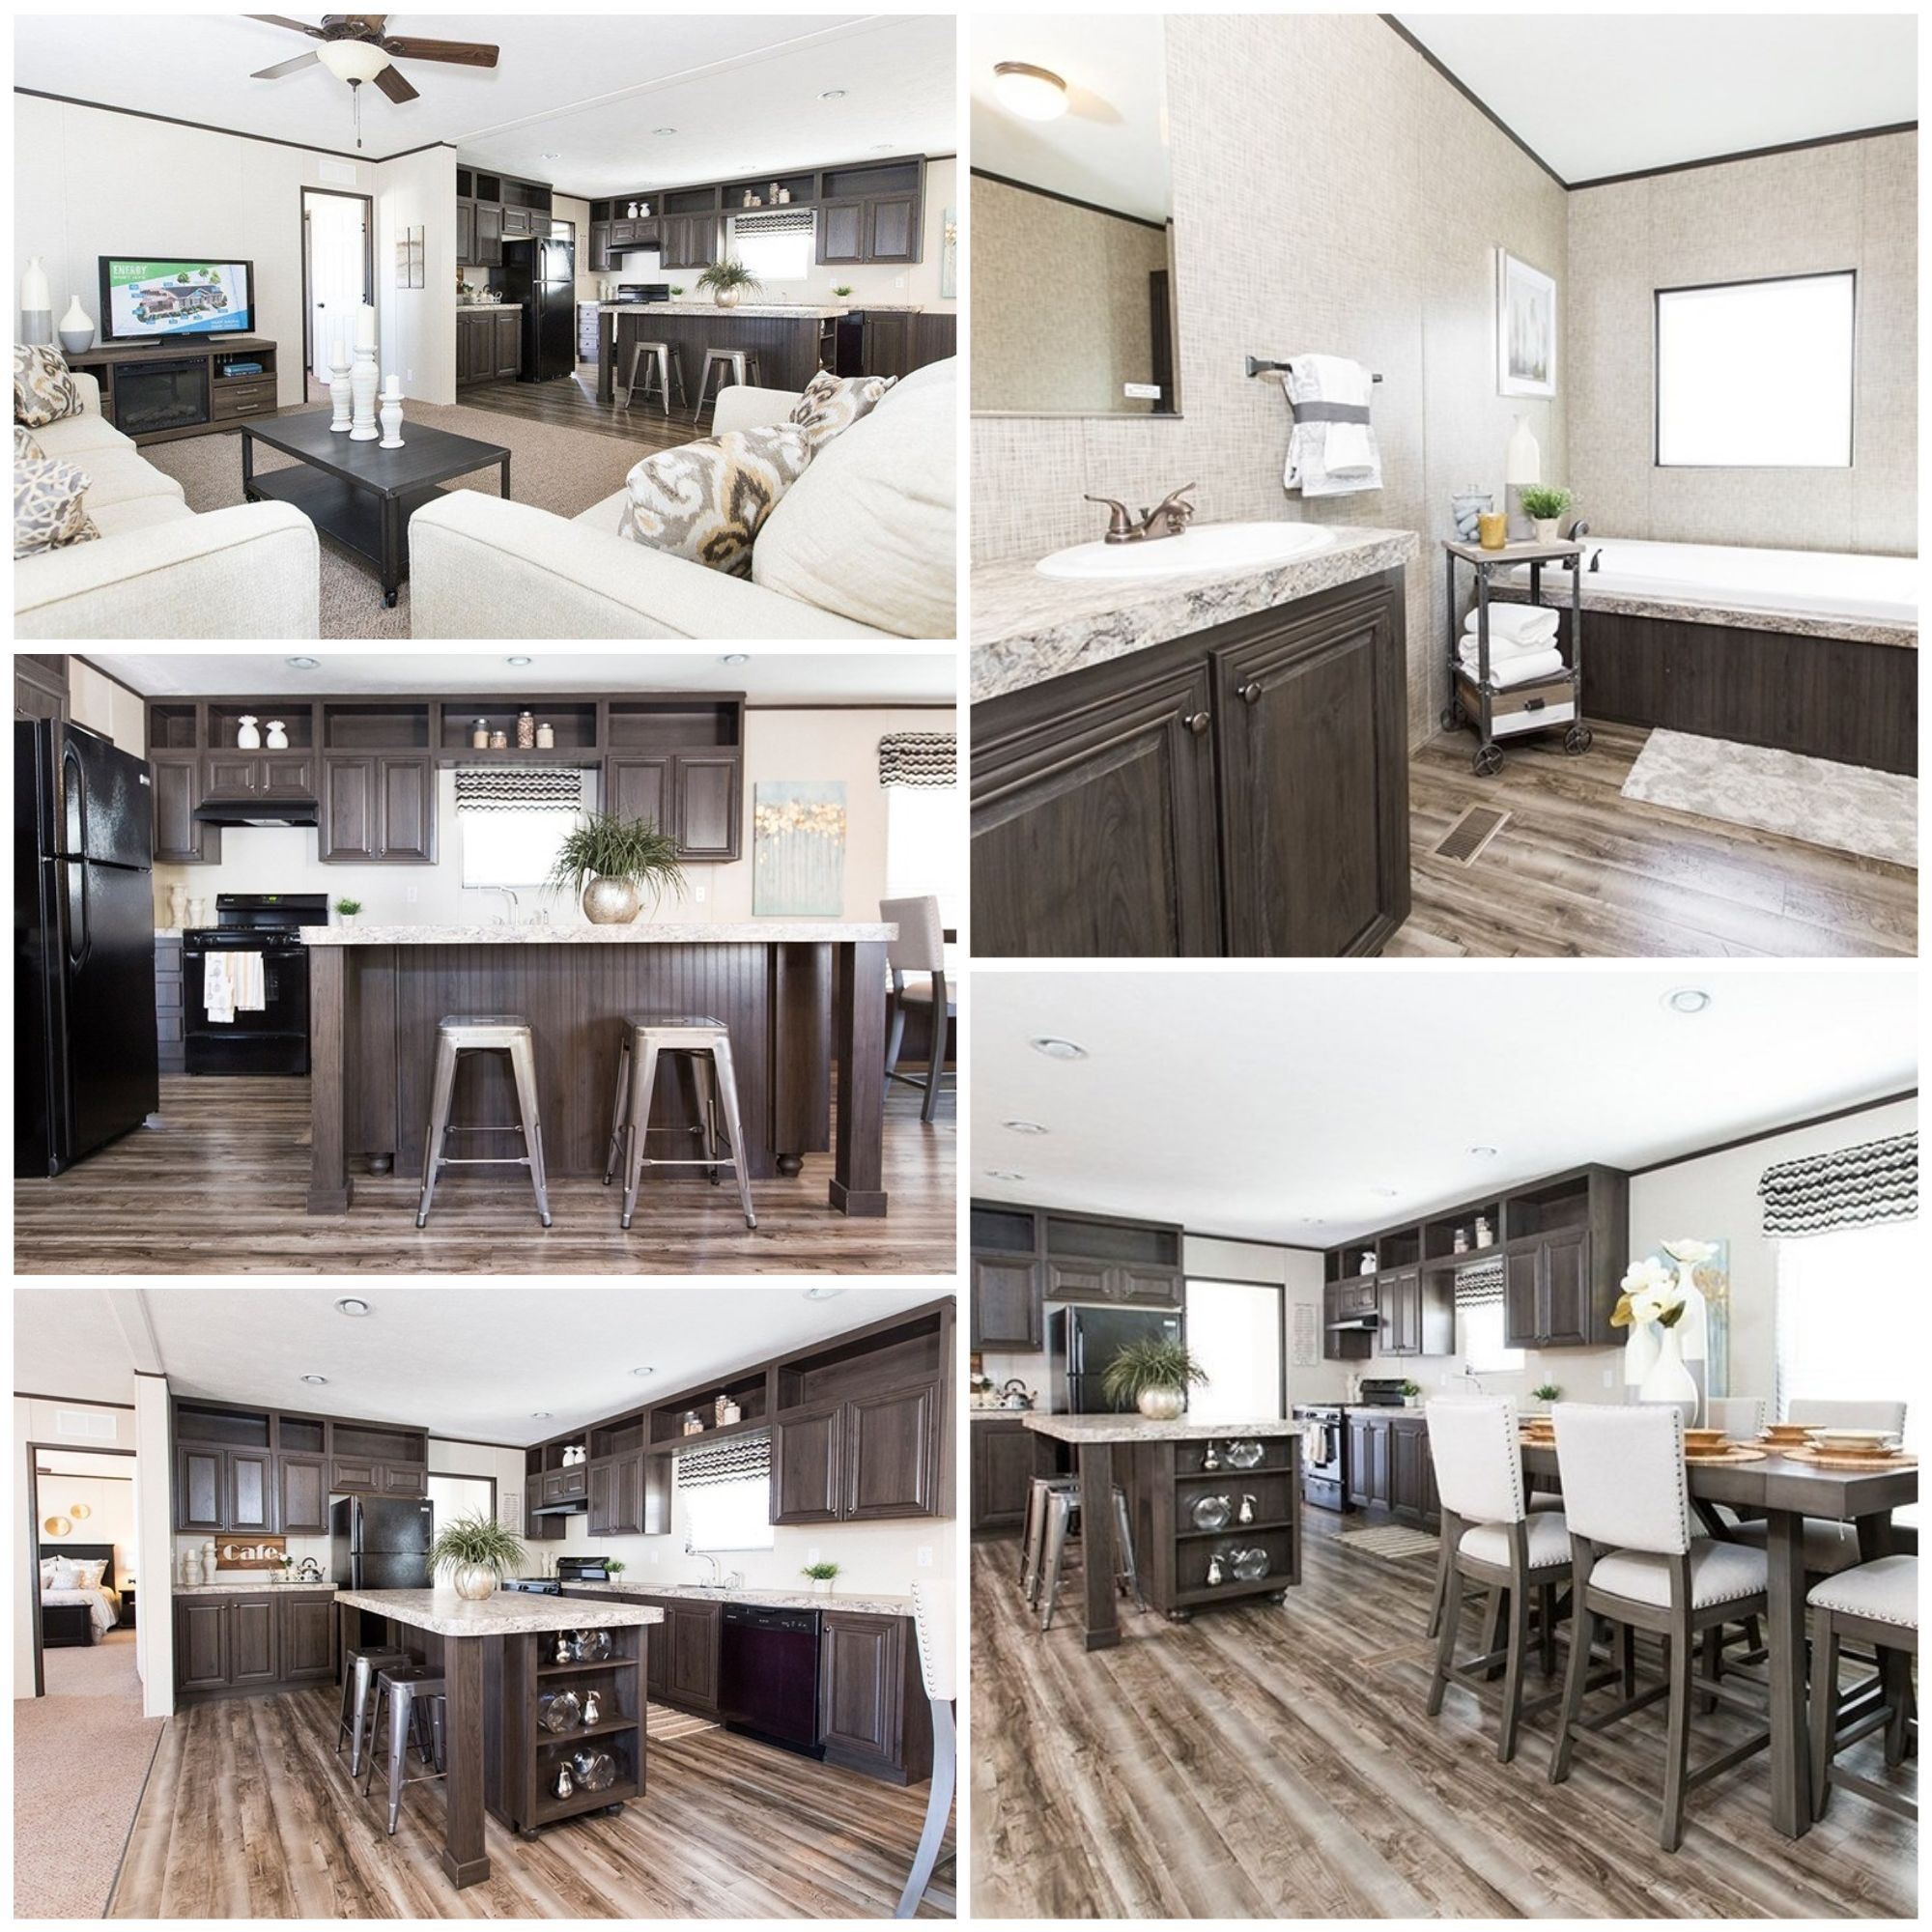 Mobile Homes Direct 4 Less Texas Manufactured Mobile Homes Remodeling Mobile Homes Mobile Home Living Single Wide Mobile Homes